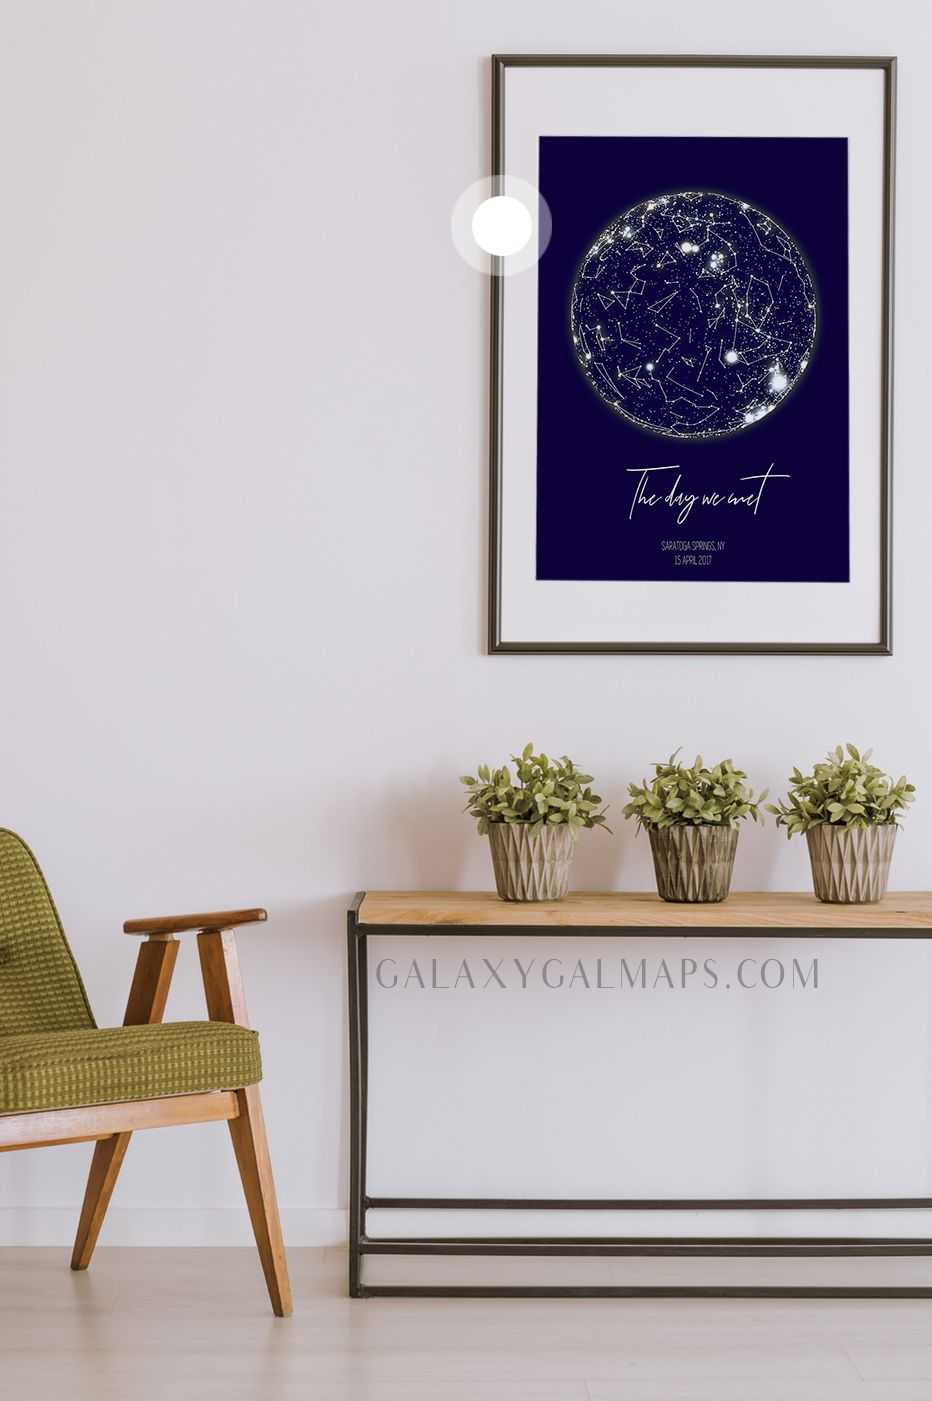 UNIQUE Sky Map for Your Date Star Map By Date Wall Art